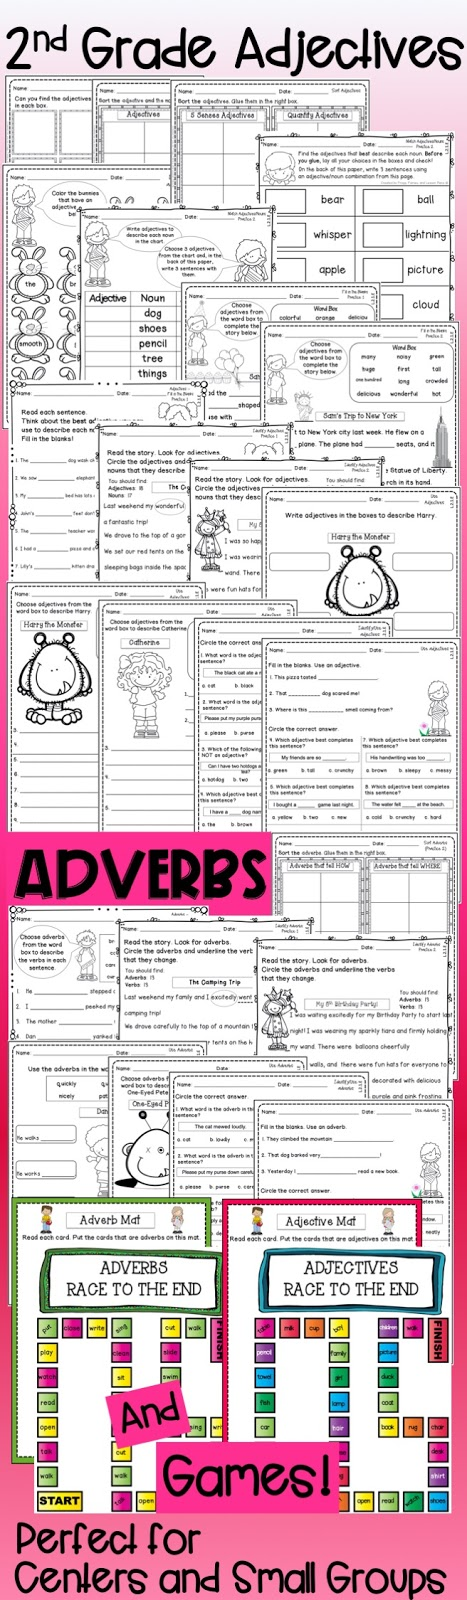 Adjective and Adverb Resources